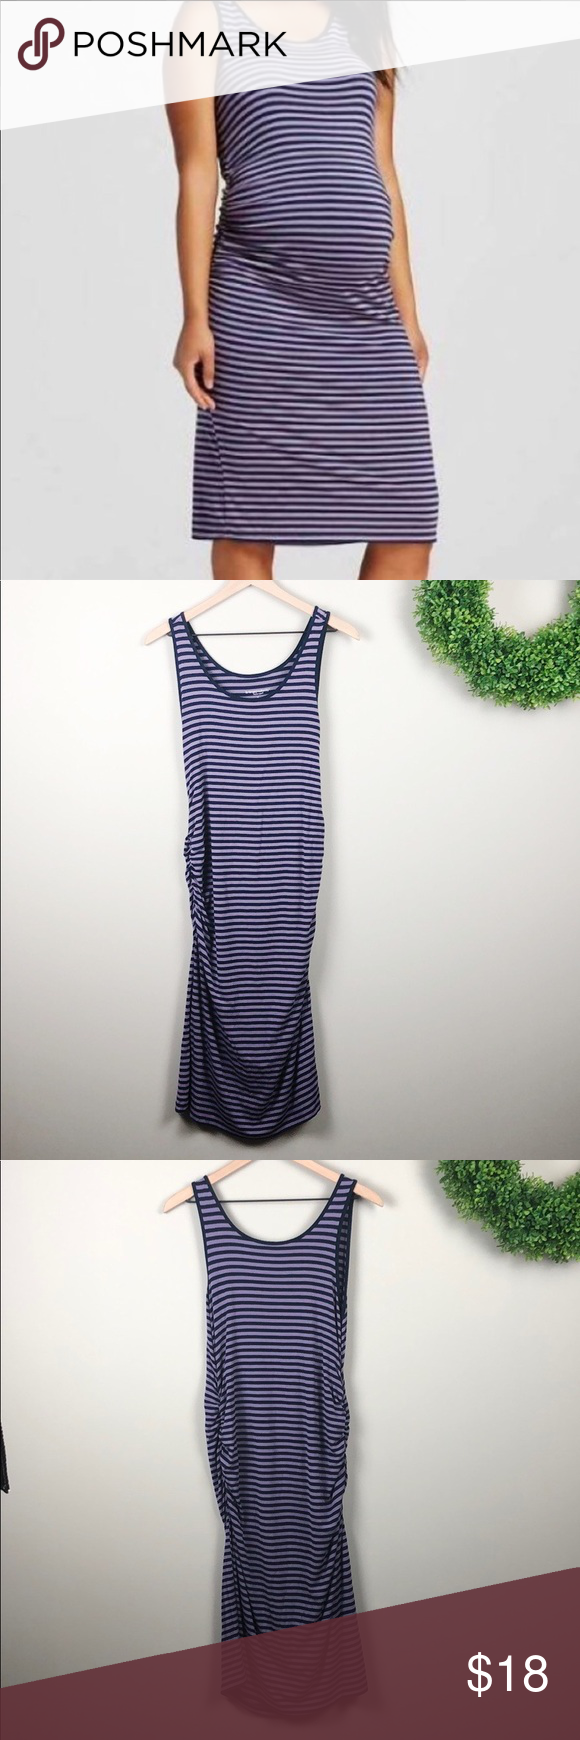 290ac79f461ed Liz Lange for Target striped midi dress maternity Very stretchy maternity  dress from Liz Lange. Purple and navy striped dress. It has amazing ruching  on ...